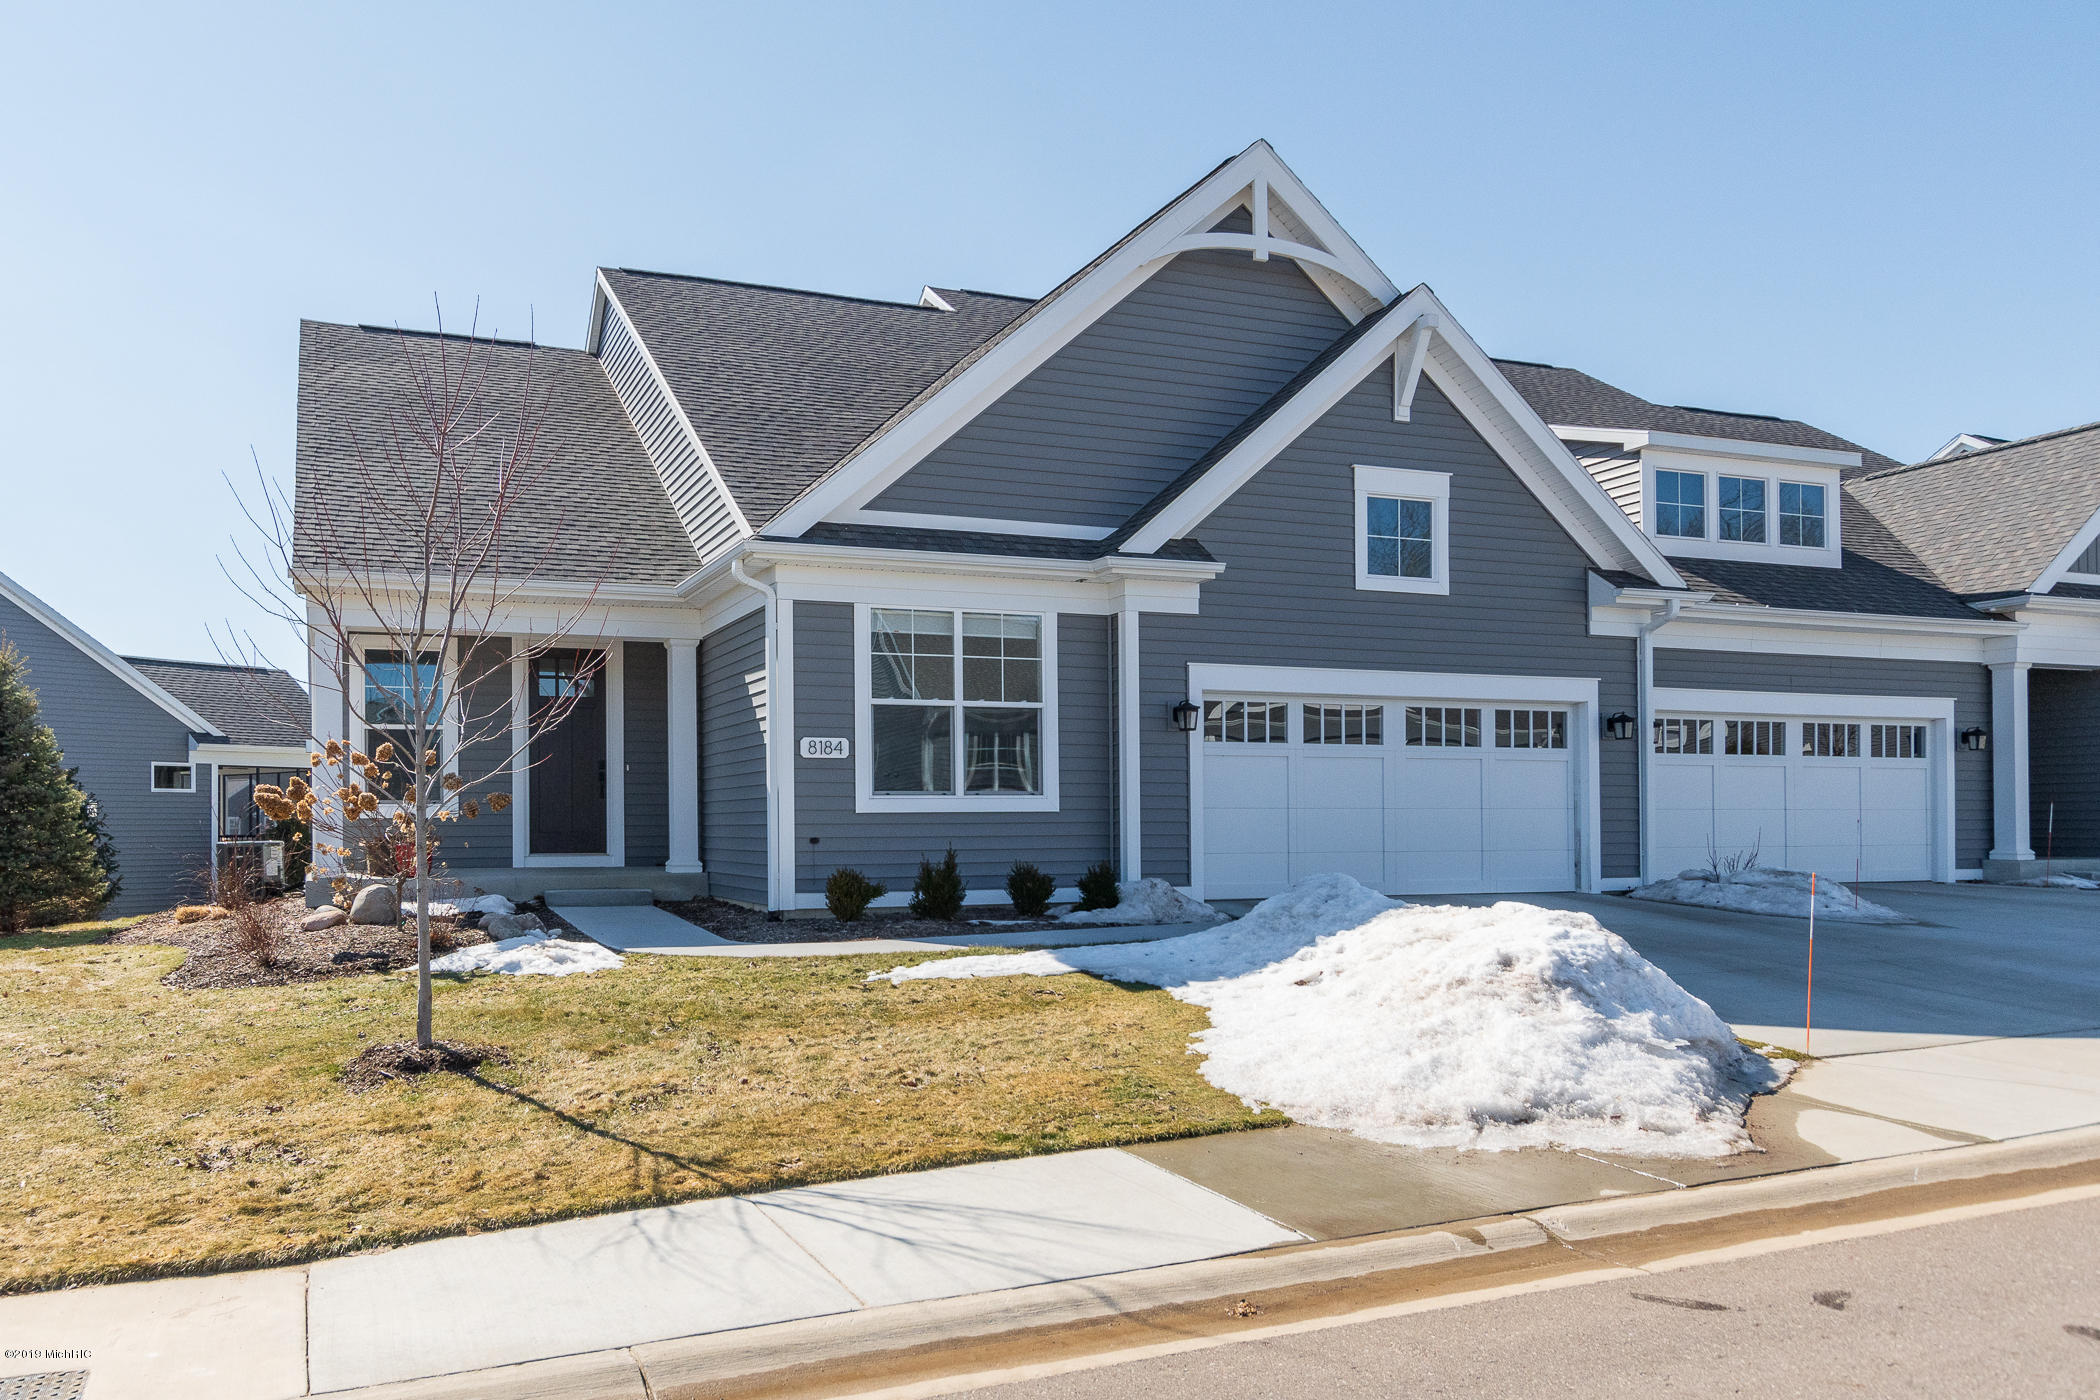 8184 Slate Stone Circle, Portage, Michigan 49024, 3 Bedrooms Bedrooms, ,3 BathroomsBathrooms,Residential,For Sale,Whisper Rock Condominium Association,Slate Stone,19009346